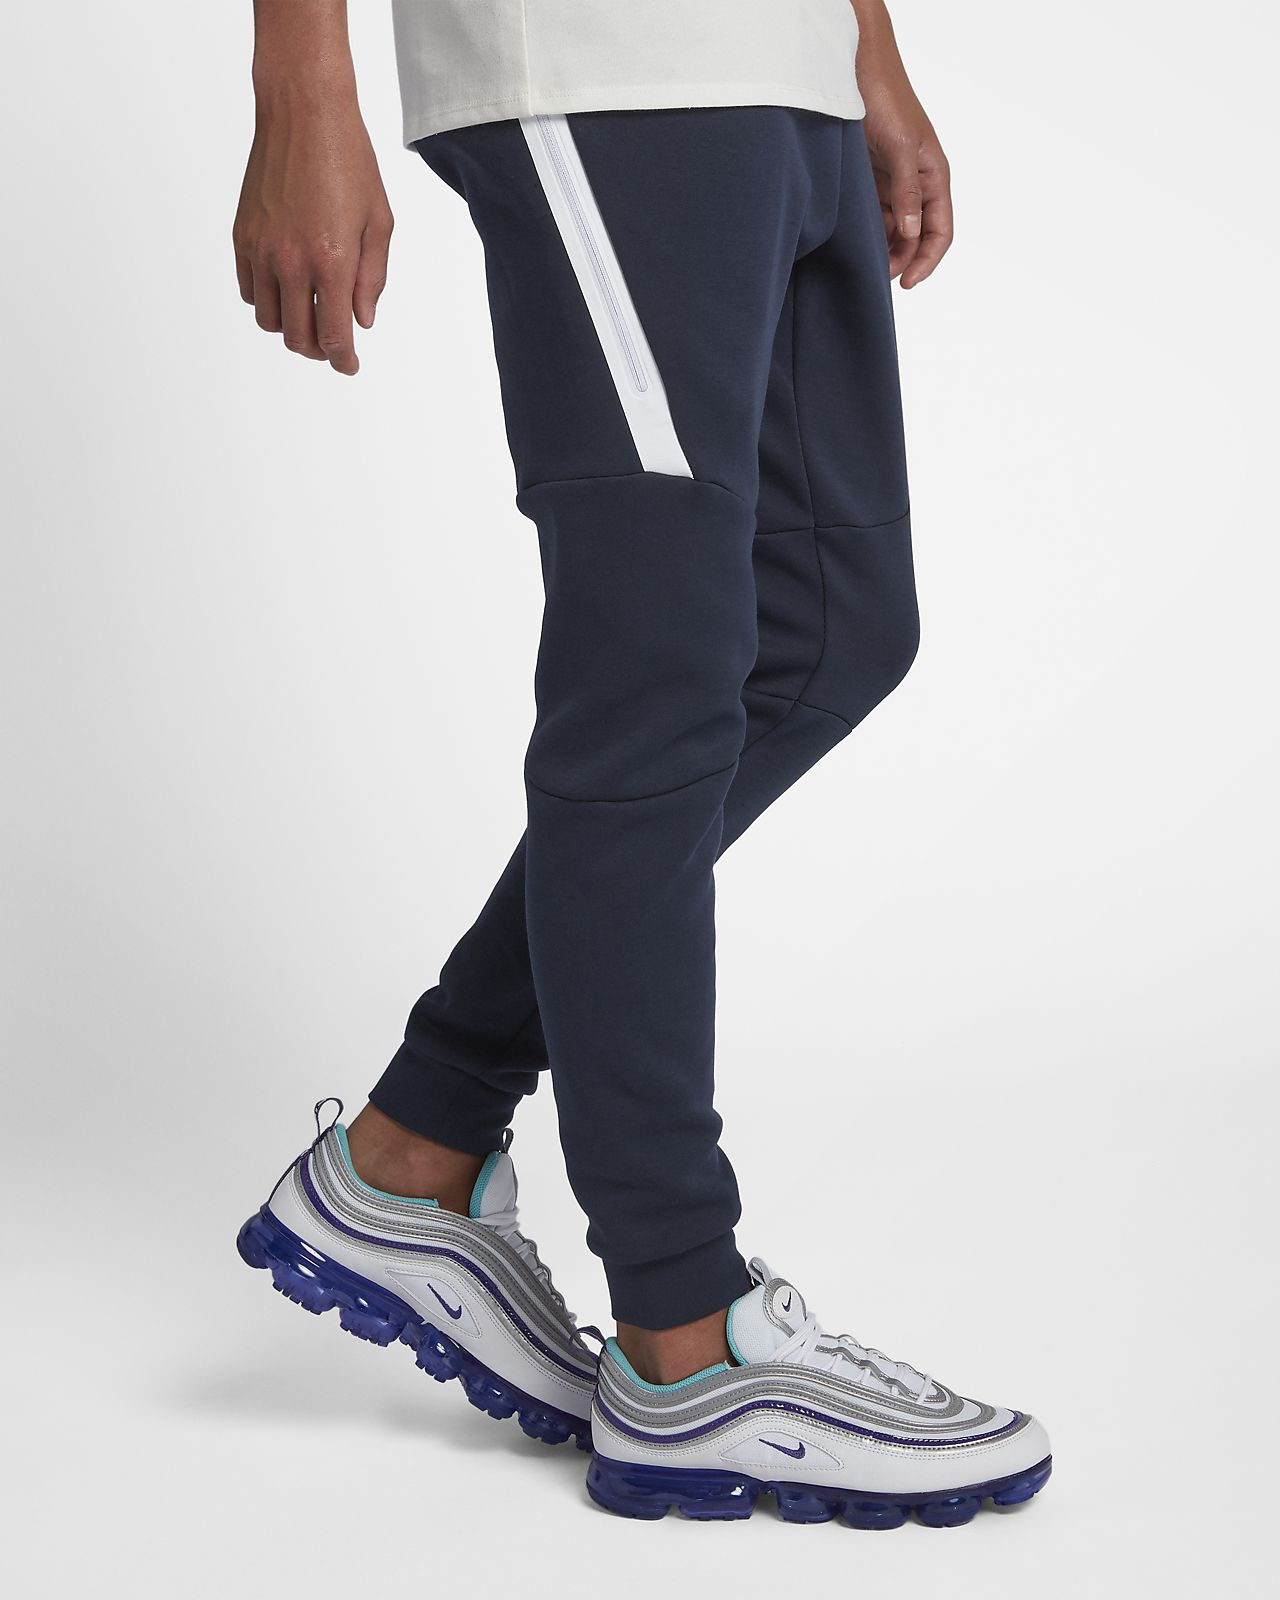 6607e517b751a Nike Sportswear Tech Fleece Men's Joggers. Nike.com LU